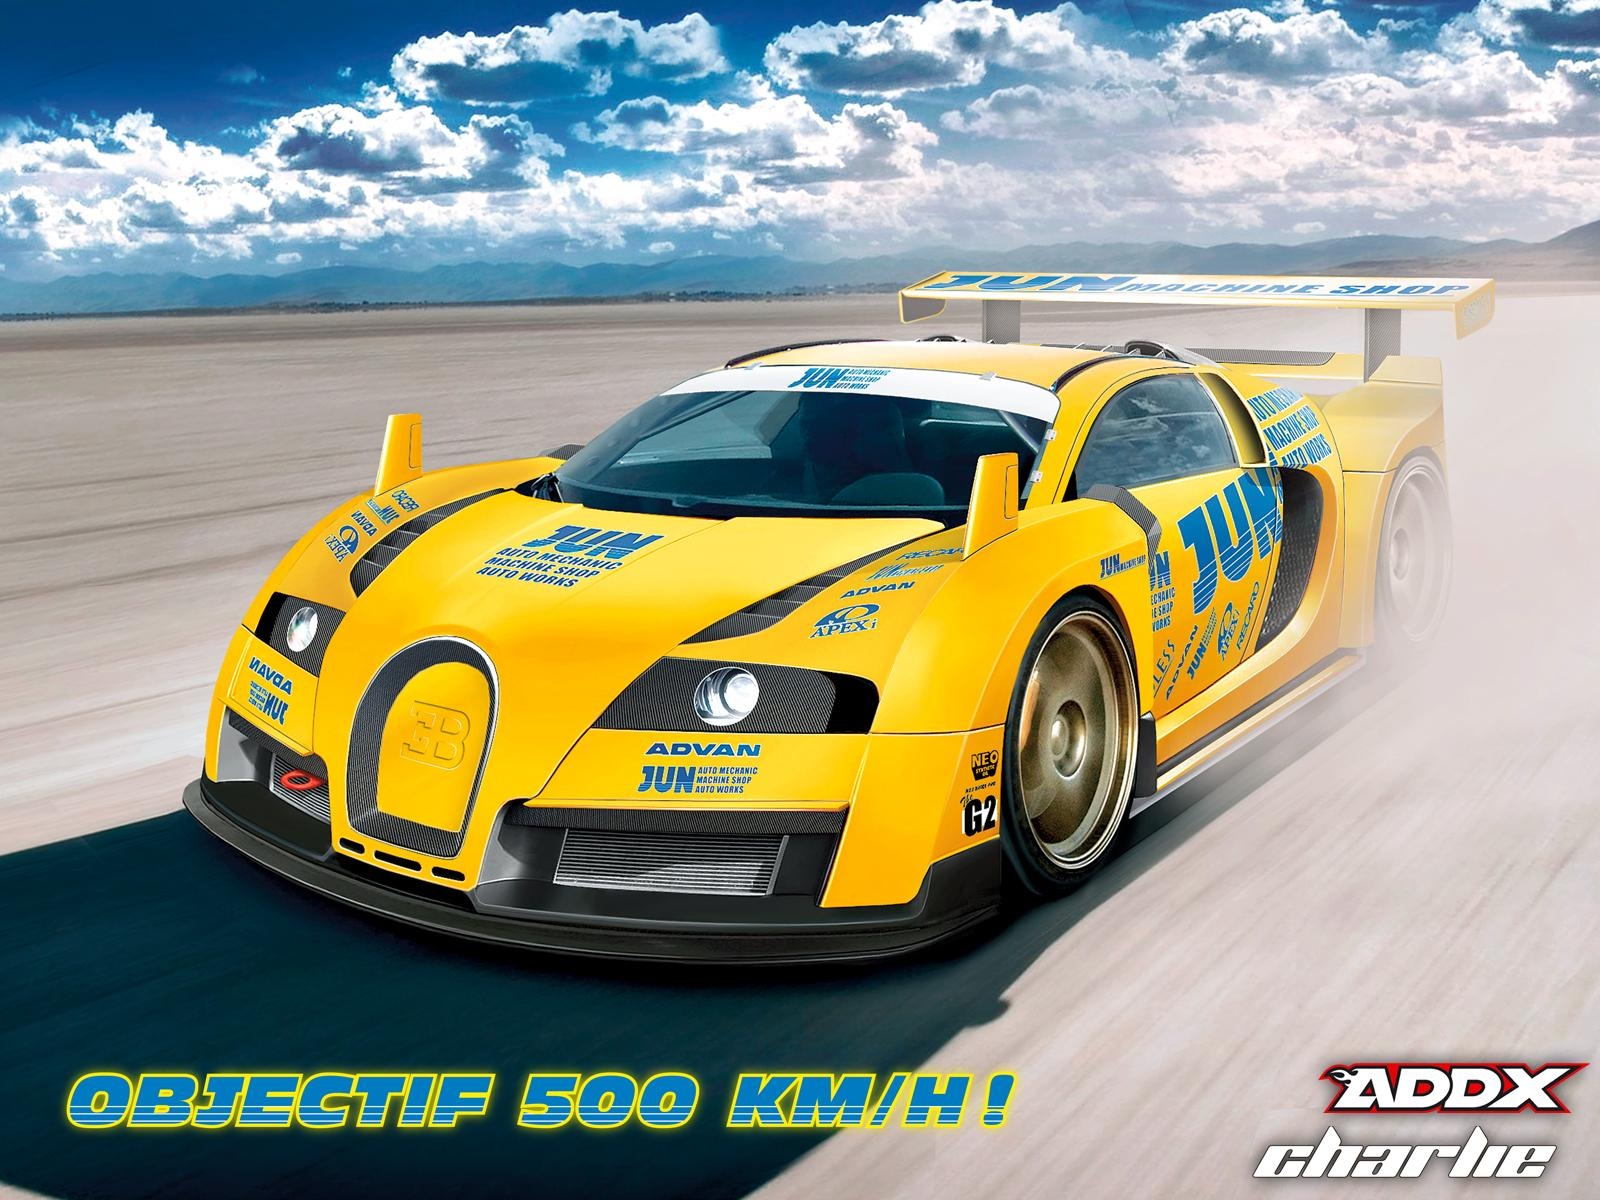 jun veyron top speed car designed to hit 500 km h news. Black Bedroom Furniture Sets. Home Design Ideas